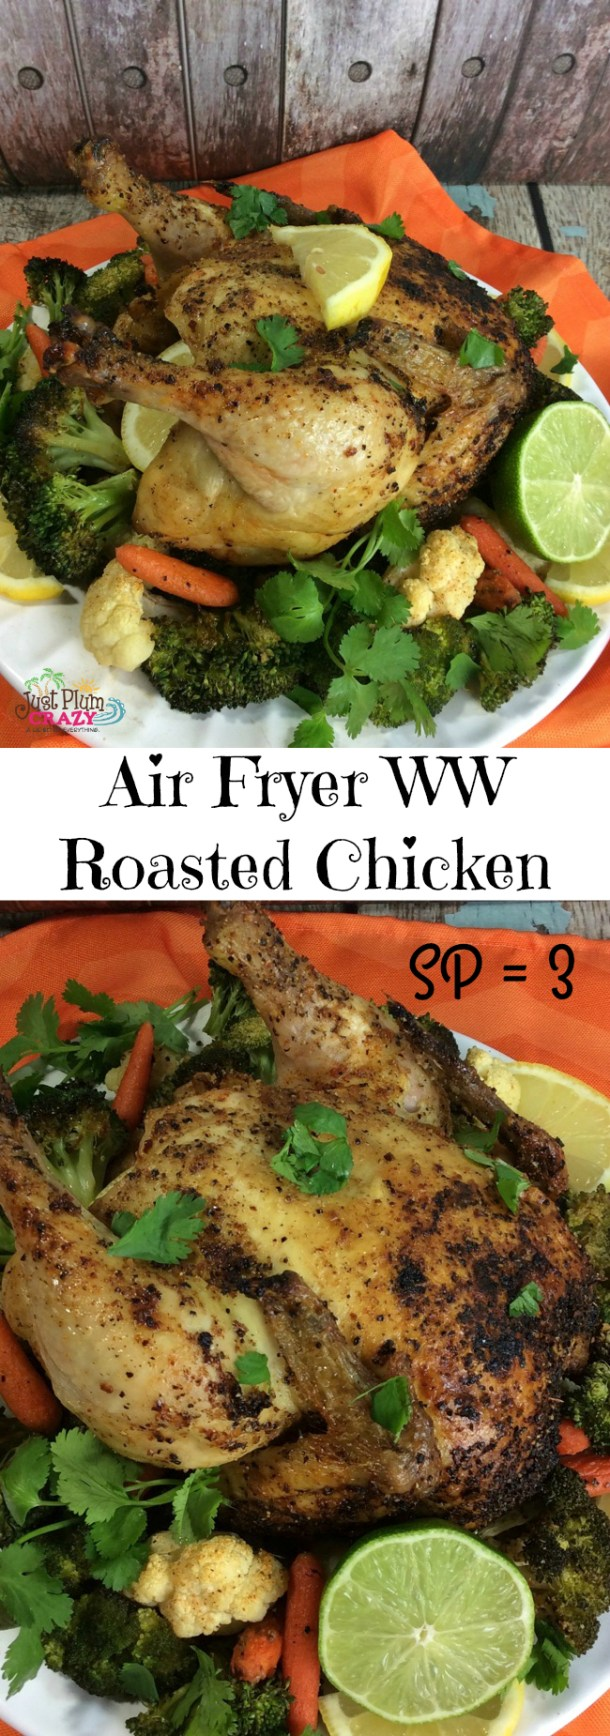 Today we are making an Air Fryer Weight Watchers Roasted Chicken Recipe. It's moist, cheap, filling and did I mention yummy!